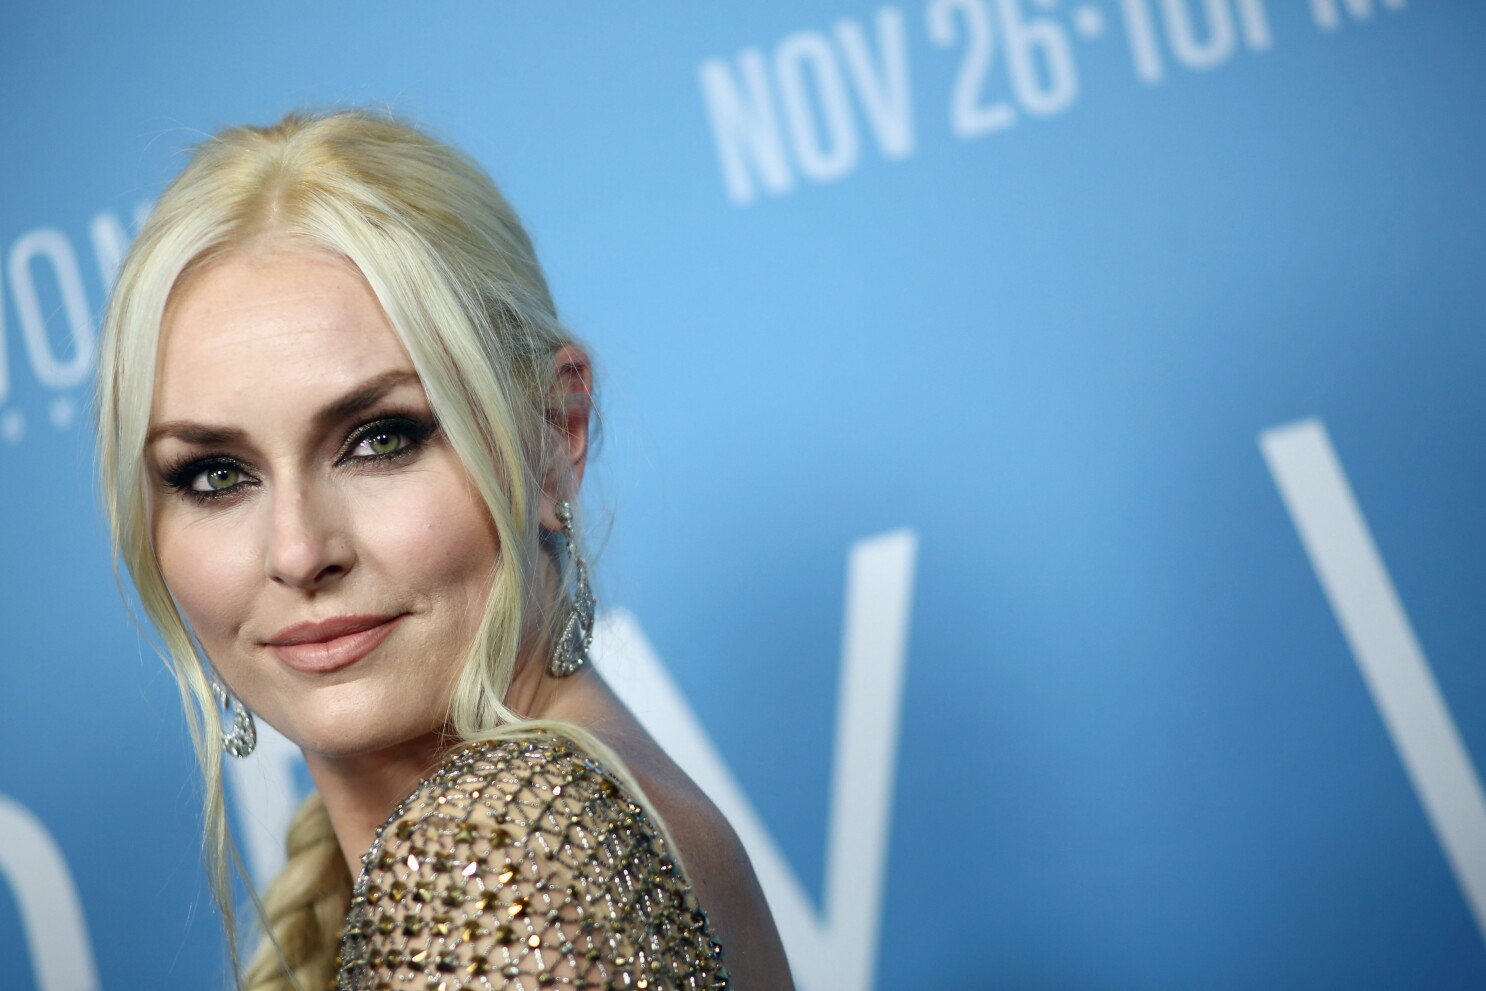 Lindsey Vonn On Her Documentary And Future With P K Subban Los Angeles Times New york ski ed foundation. lindsey vonn on her documentary and